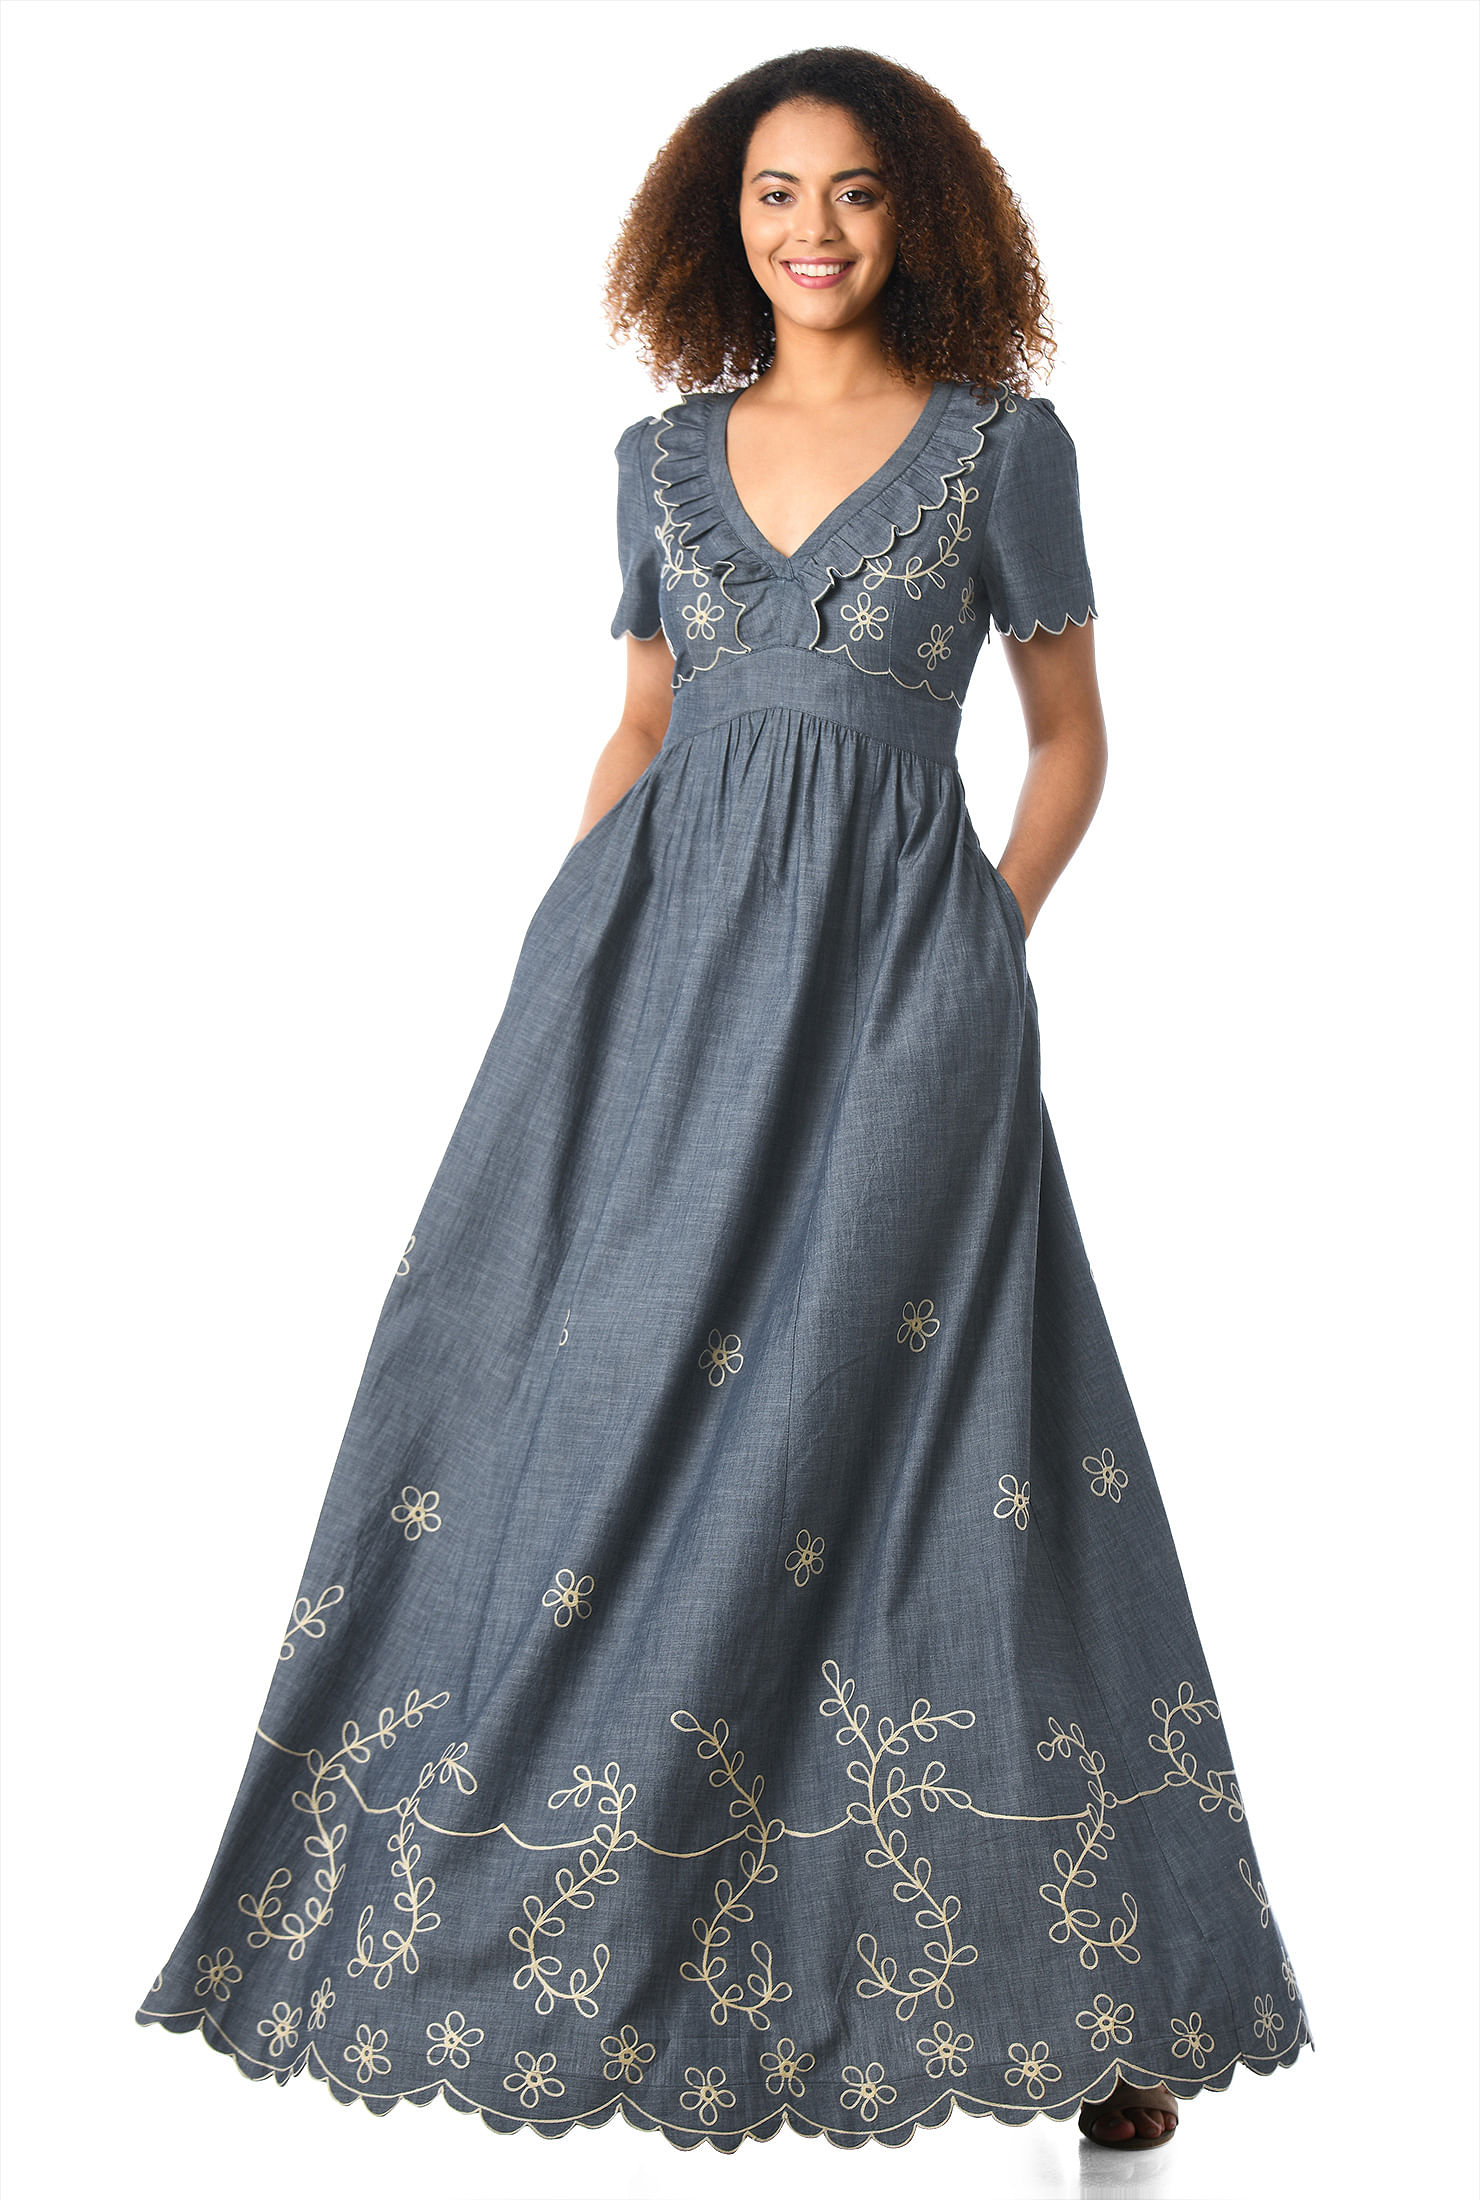 Floral Embellished Cotton Chambray Maxi Dress by Eshakti